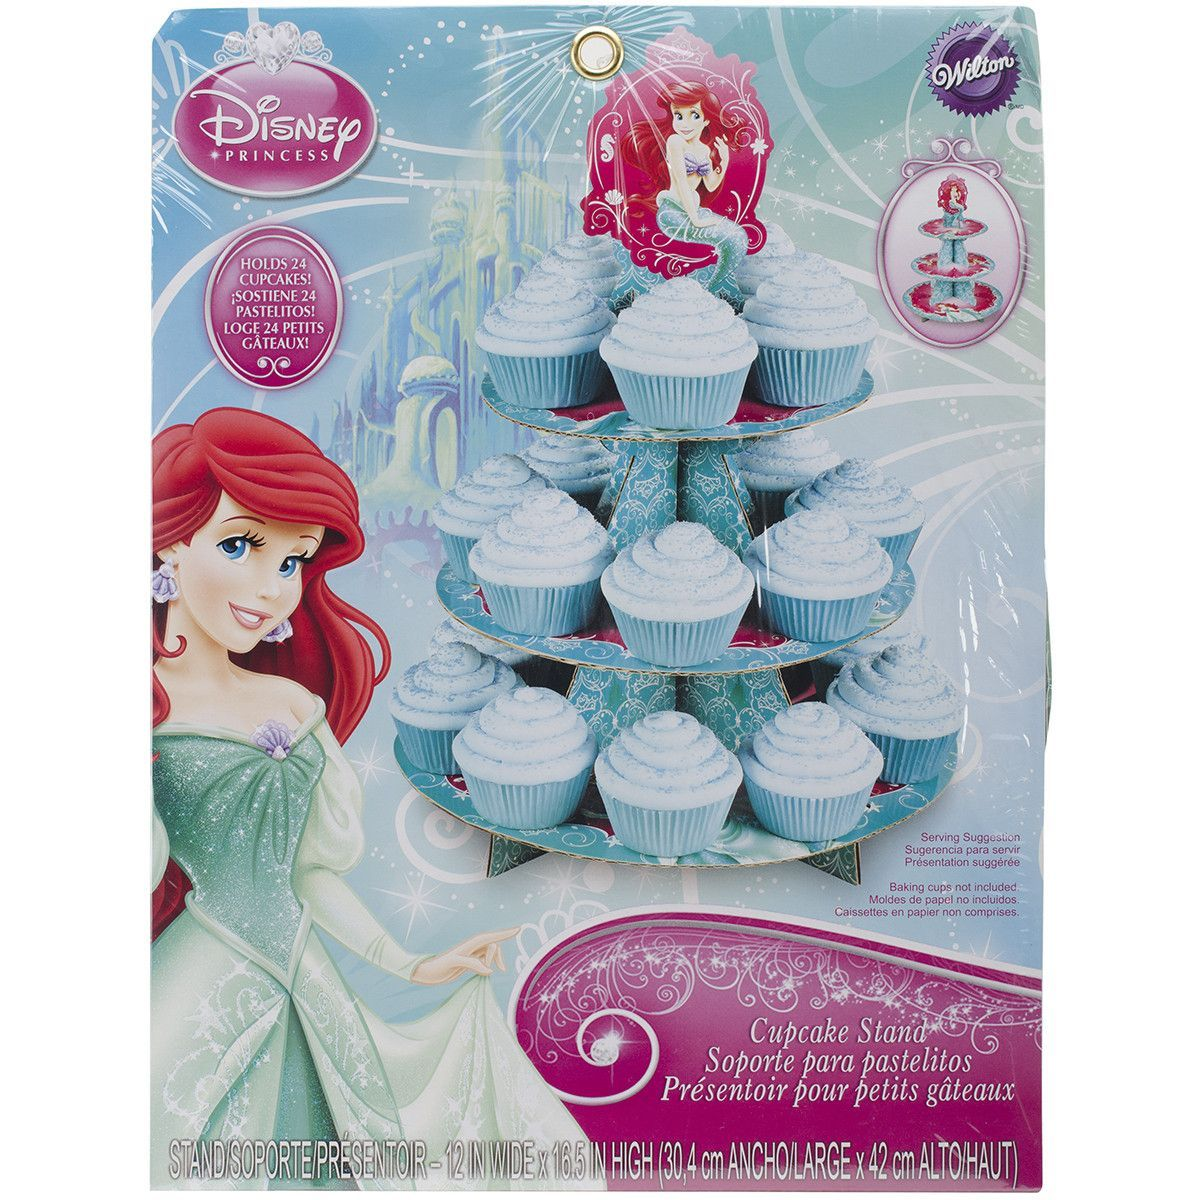 Treat Stand-Ariel 12X16.5 Holds 24 Cupcakes